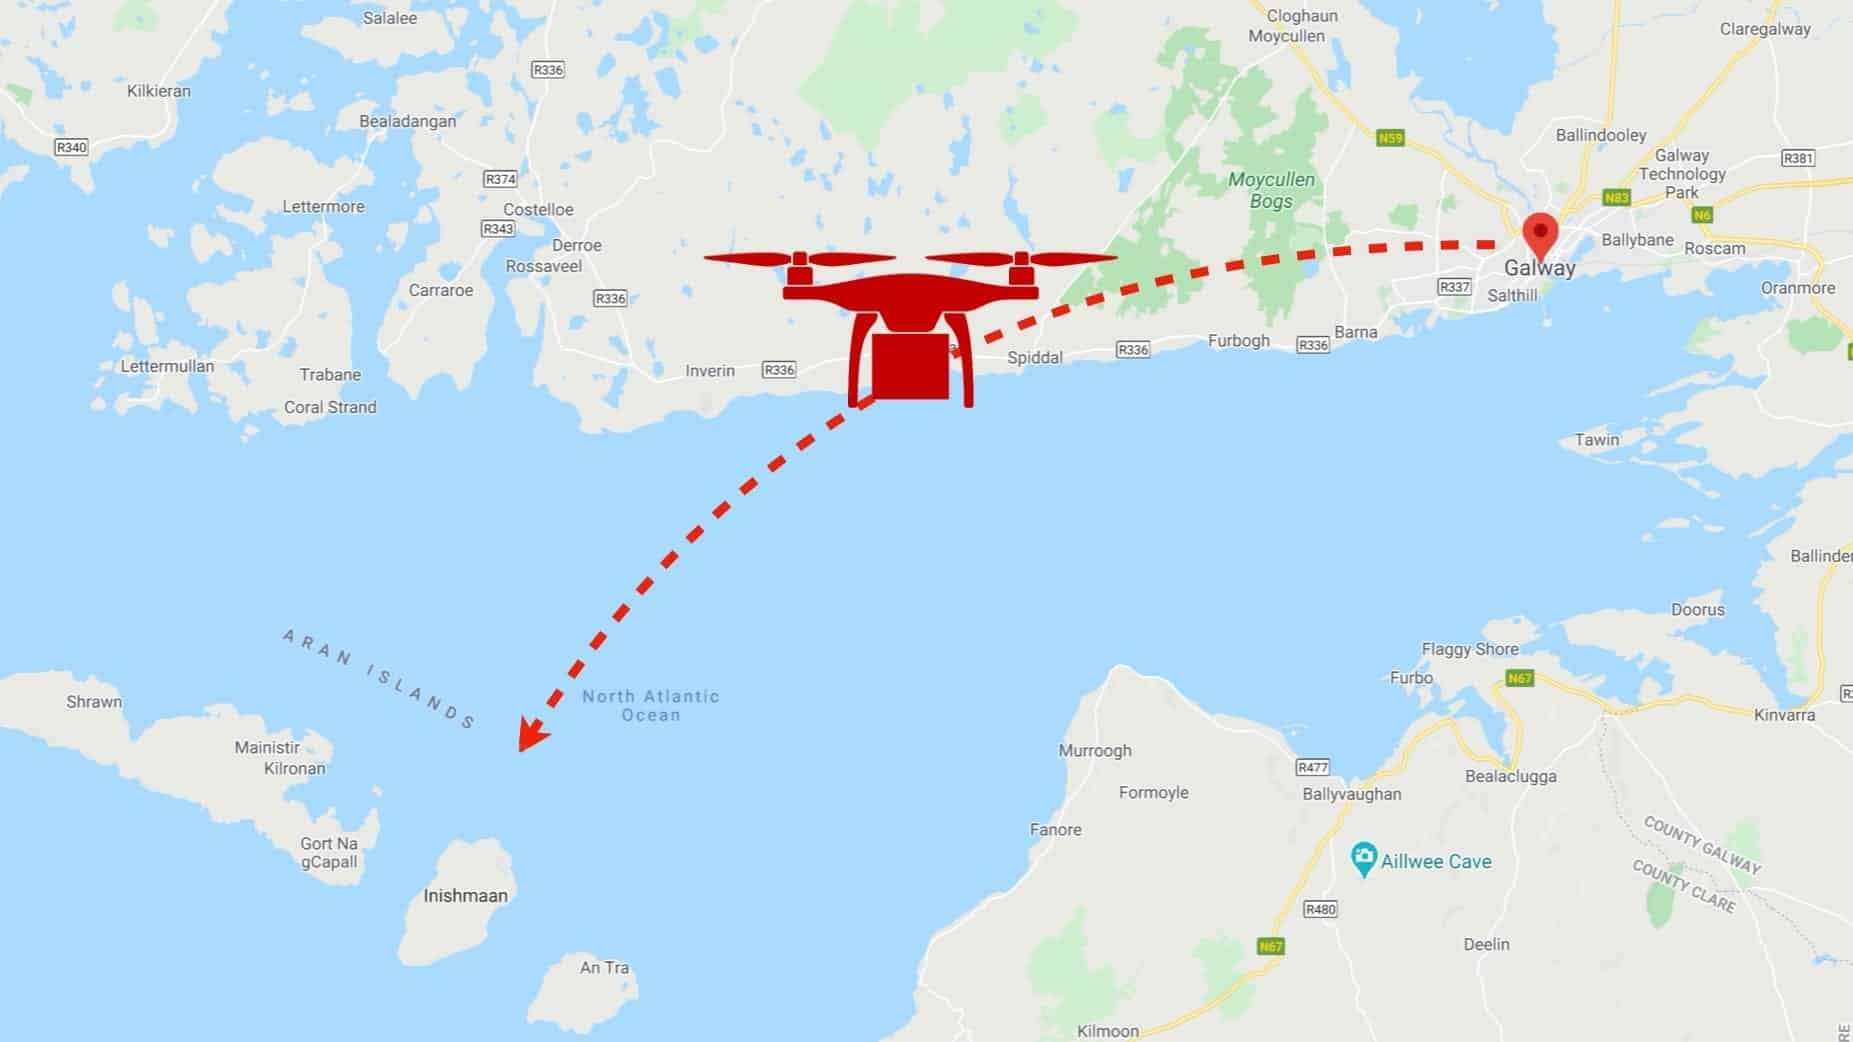 World's first documented drone delivery of insulin happened in Ireland